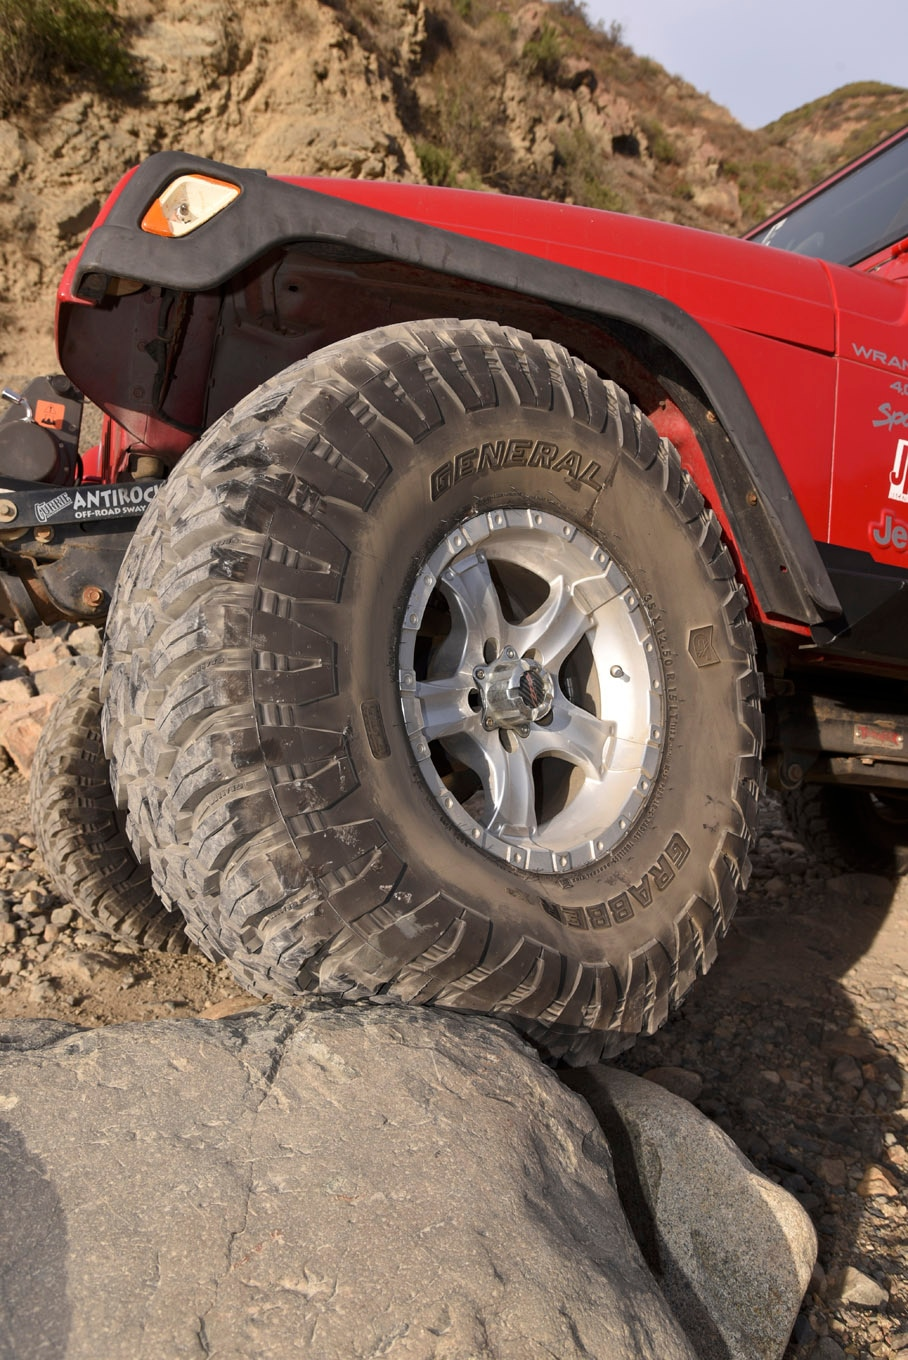 We like to keep our wheels at about half the diameter of the tire to be run (20s for 40s, 17s for 35s, and 15s for 30s), although we often run 15s on 35s. This simple formula seems to work out well, keeping the sidewall tall enough to be flexible off-road, but not squirmy on the highway.